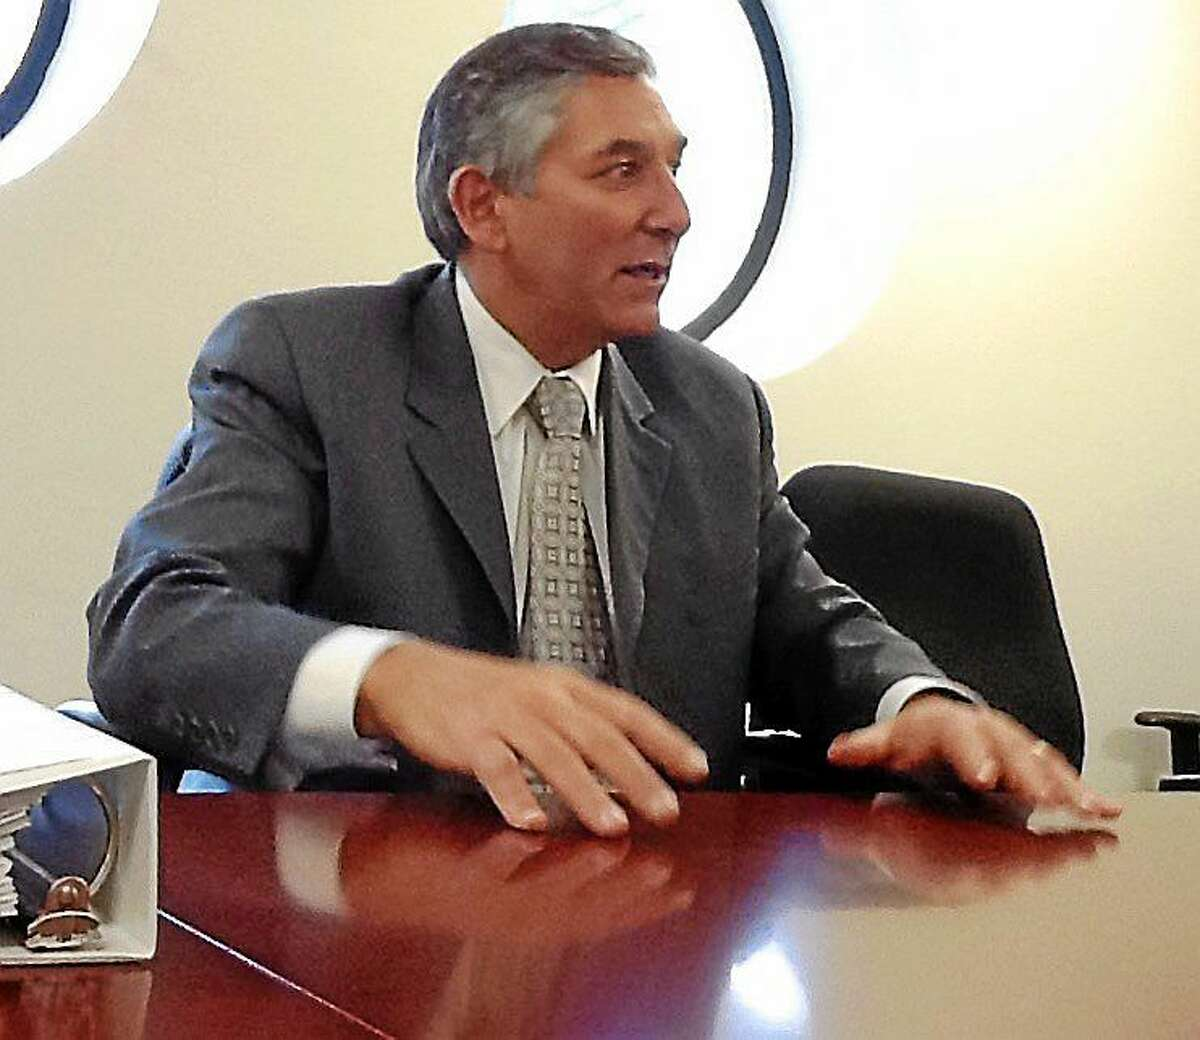 State Senate Minority Leader Len Fasano makes a point while speaking to the New Haven Register editorial board.